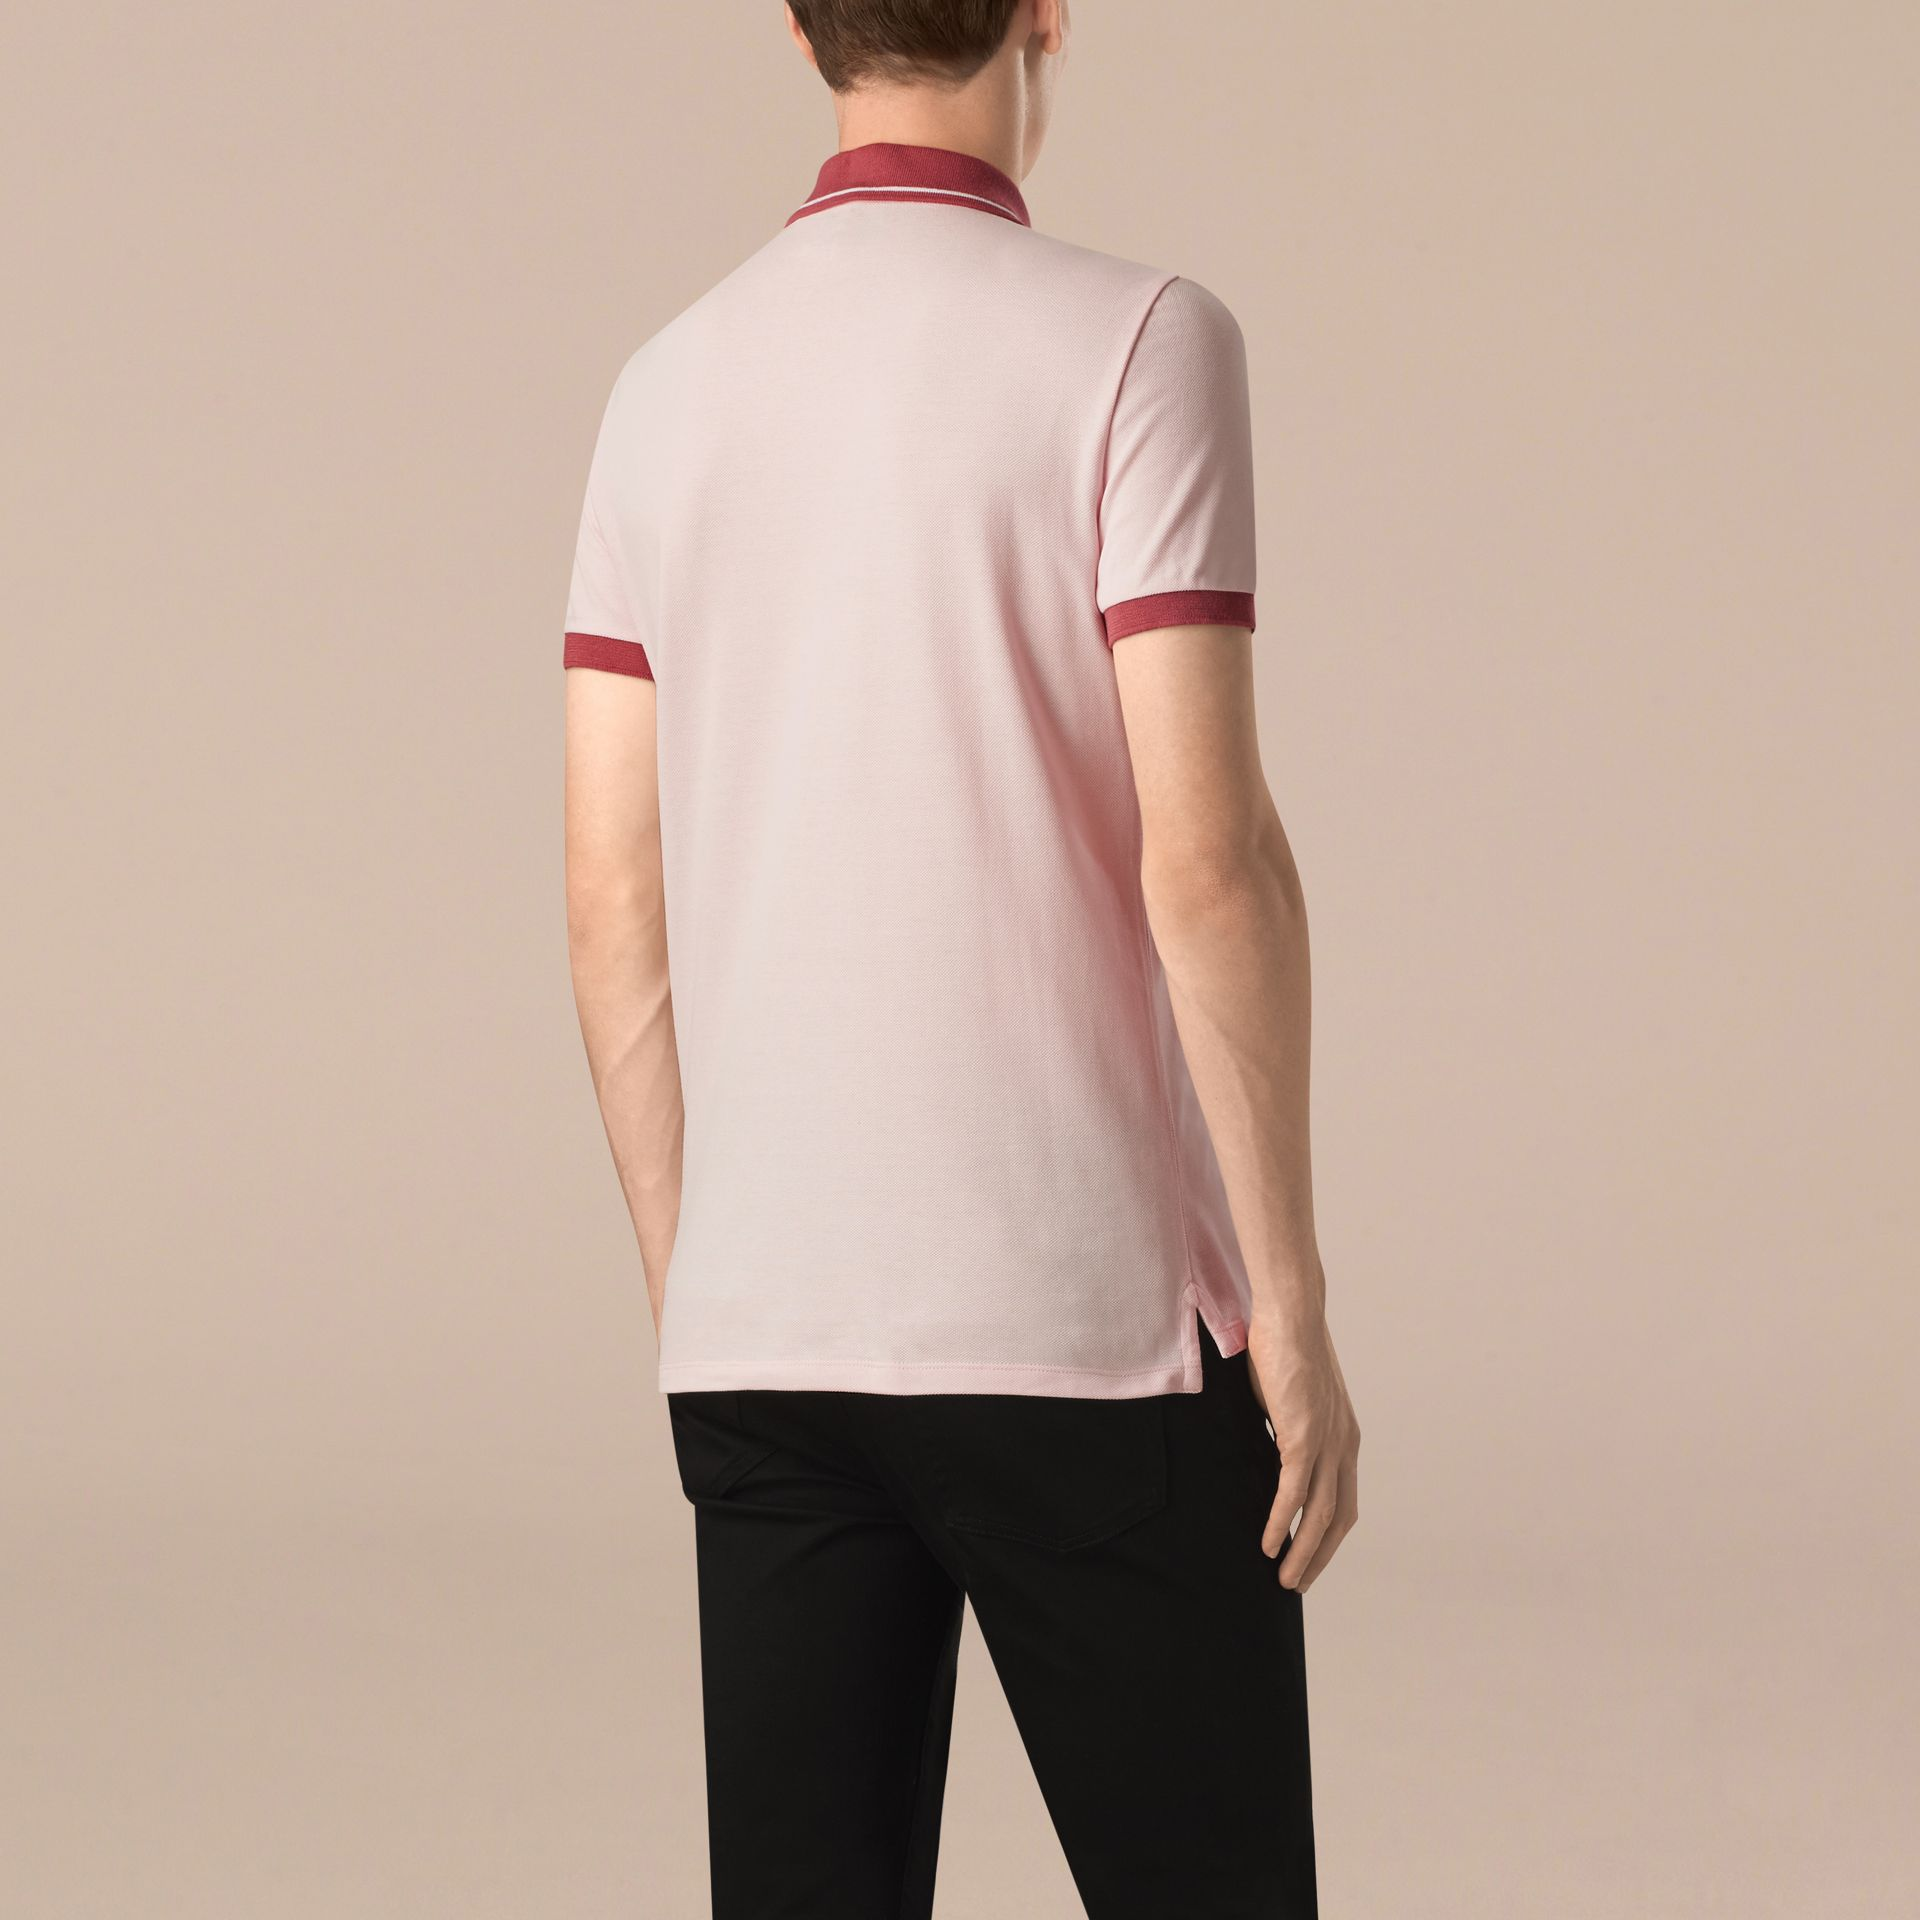 City pink/white Contrast Trim Cotton Piqué Polo Shirt City Pink/white - gallery image 2